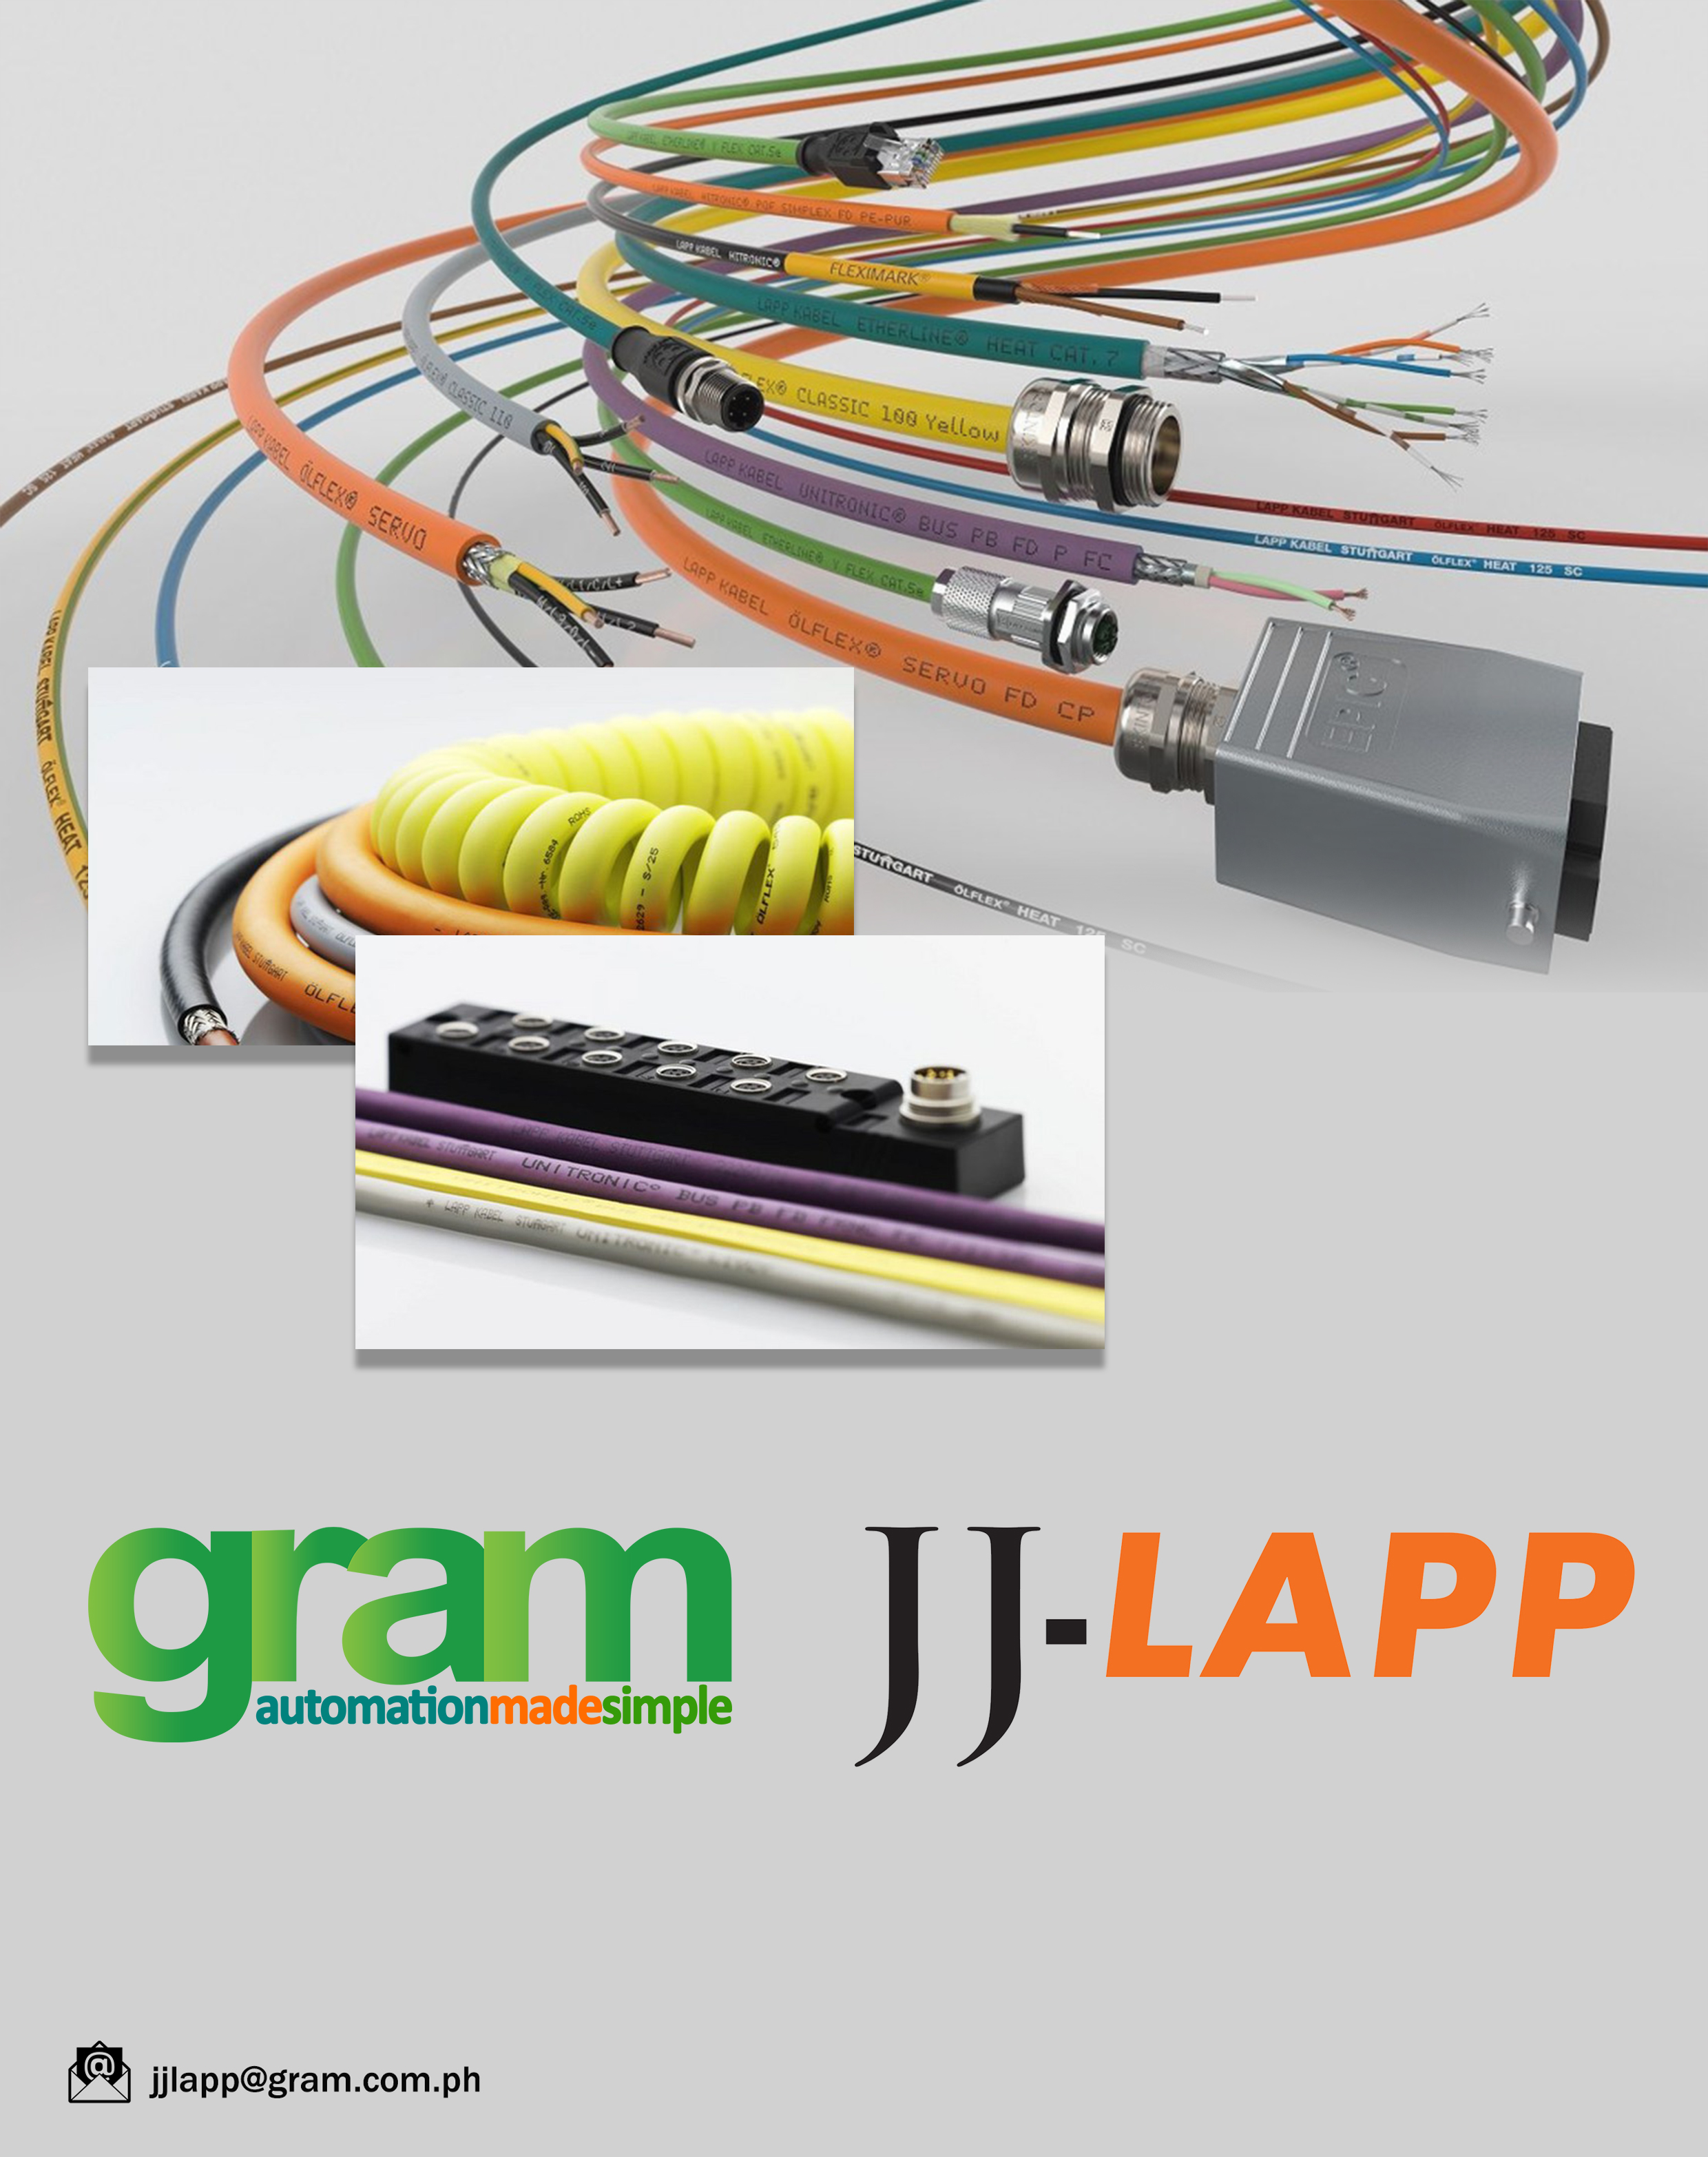 Gram partners with JJ-Lapp Cable